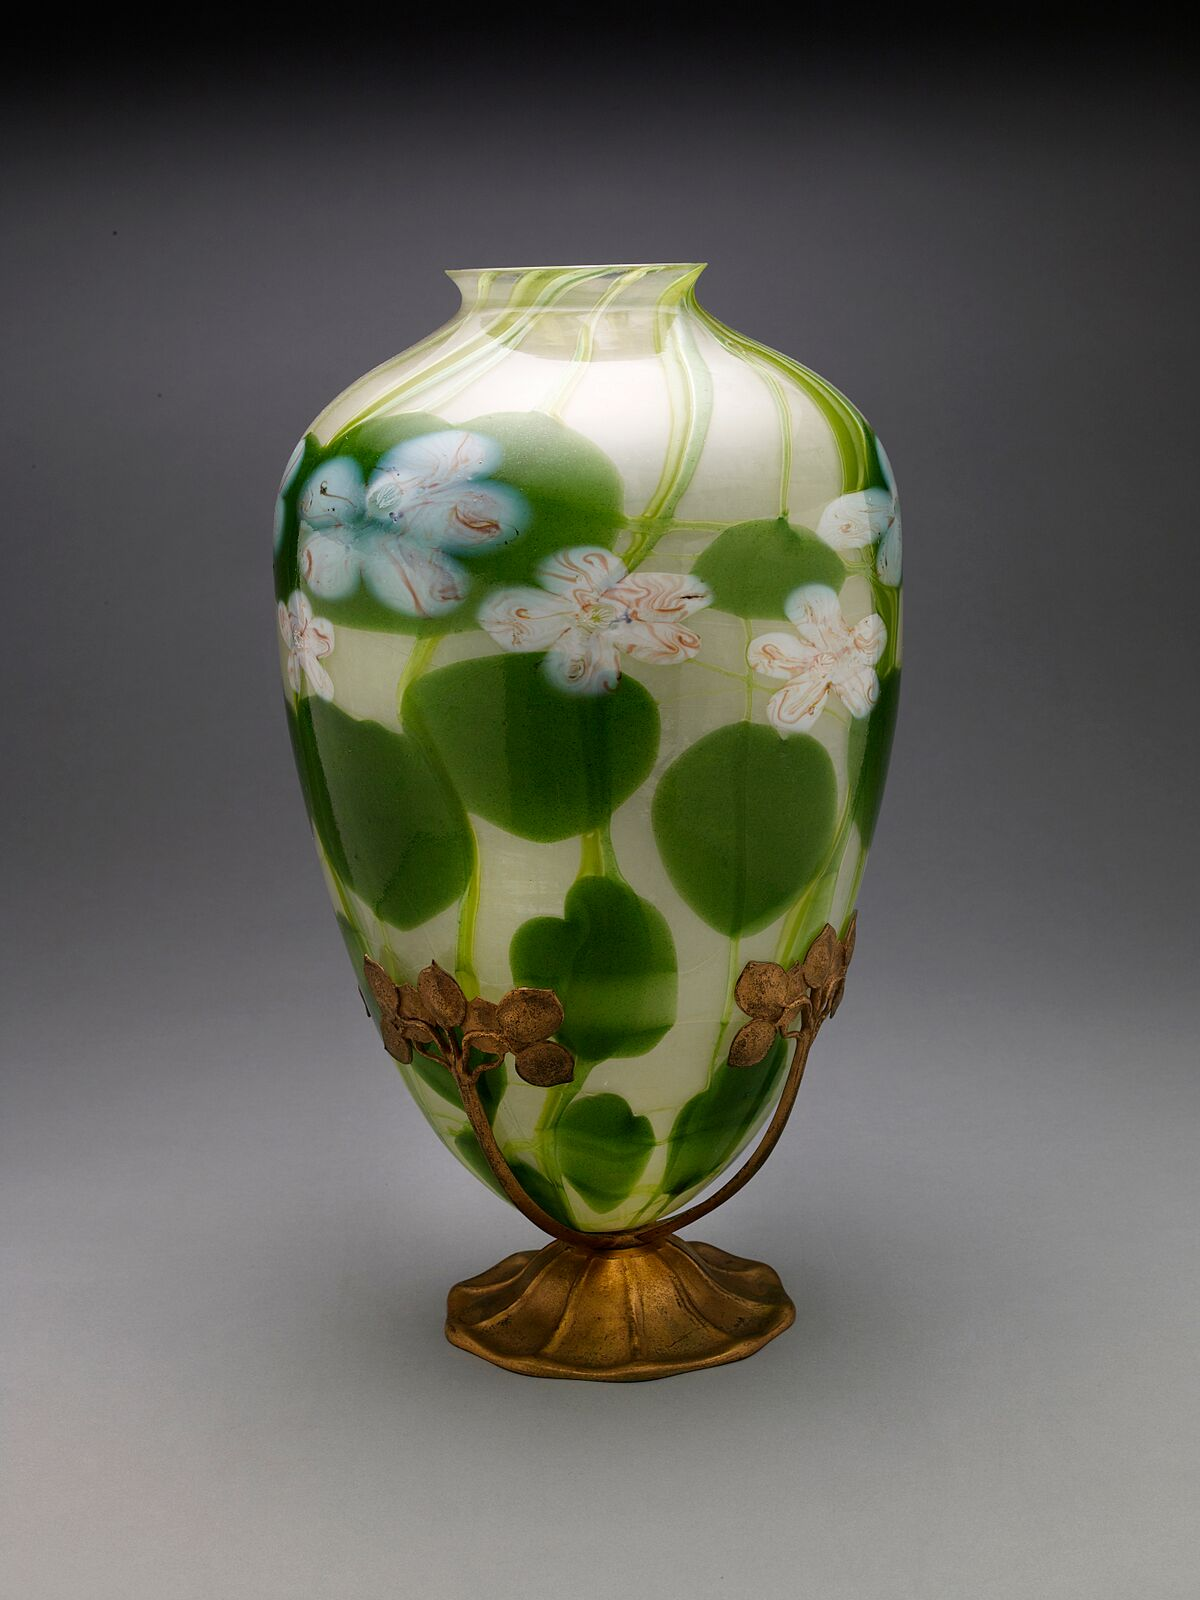 Tiffany Studios, Water Lily Millefiore Vase with Stand , about 1910, blown glass, gilt bronze stand. Photograph by John Faier. © Driehaus Museum 2013